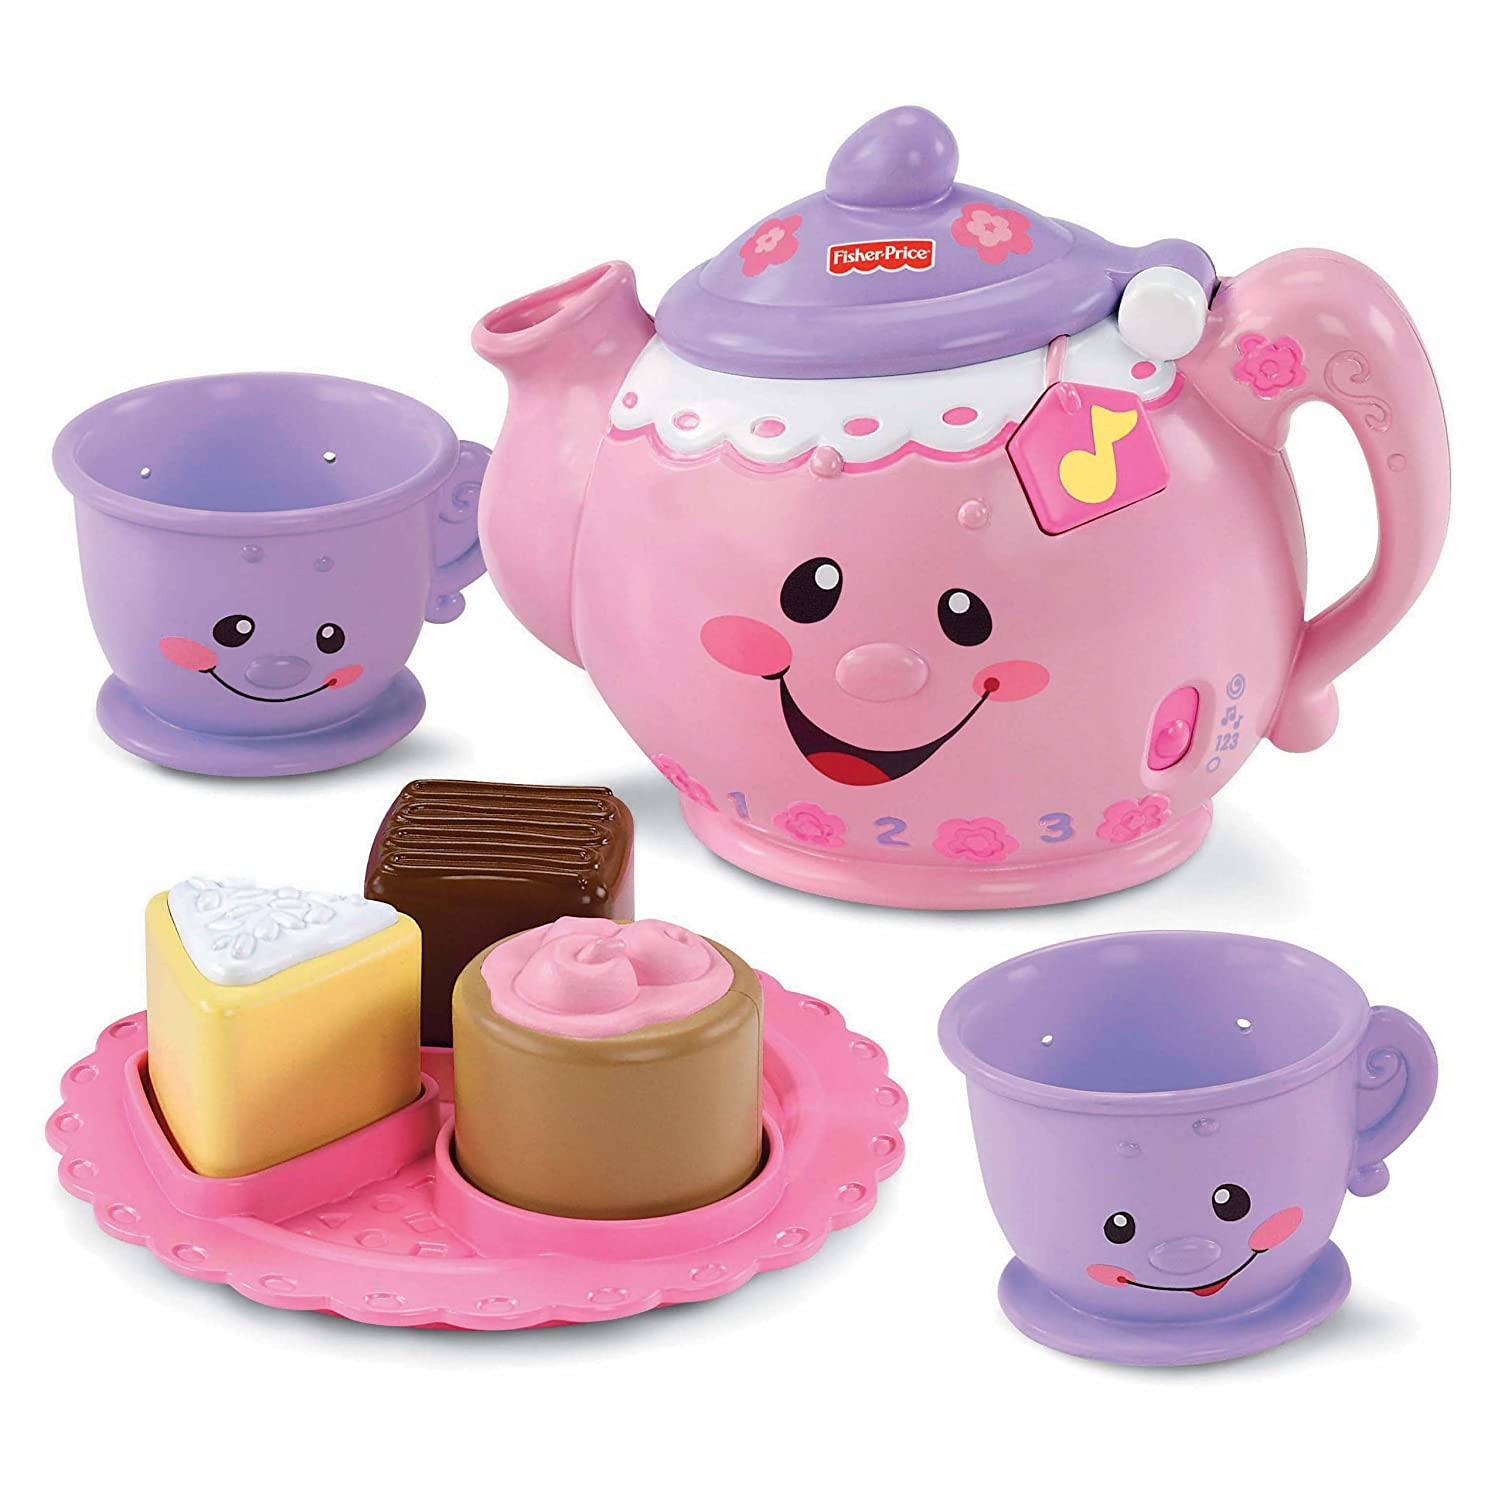 eating chairs for toddlers chair design mid century mother knows best reviews: toy tea sets